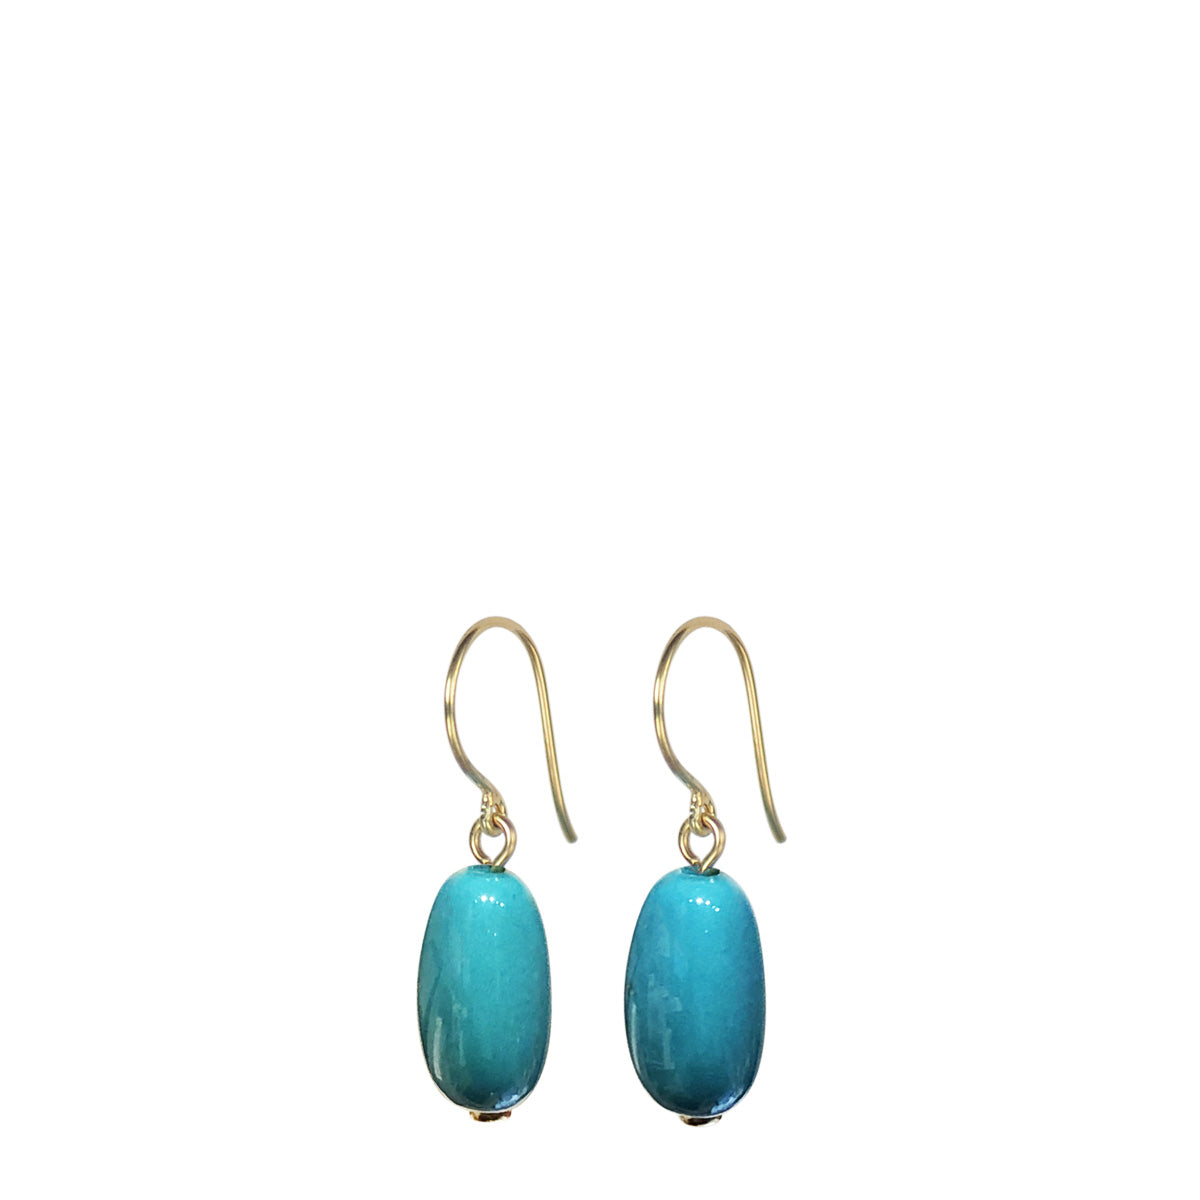 18K Gold Turquoise Bead Drop Earrings